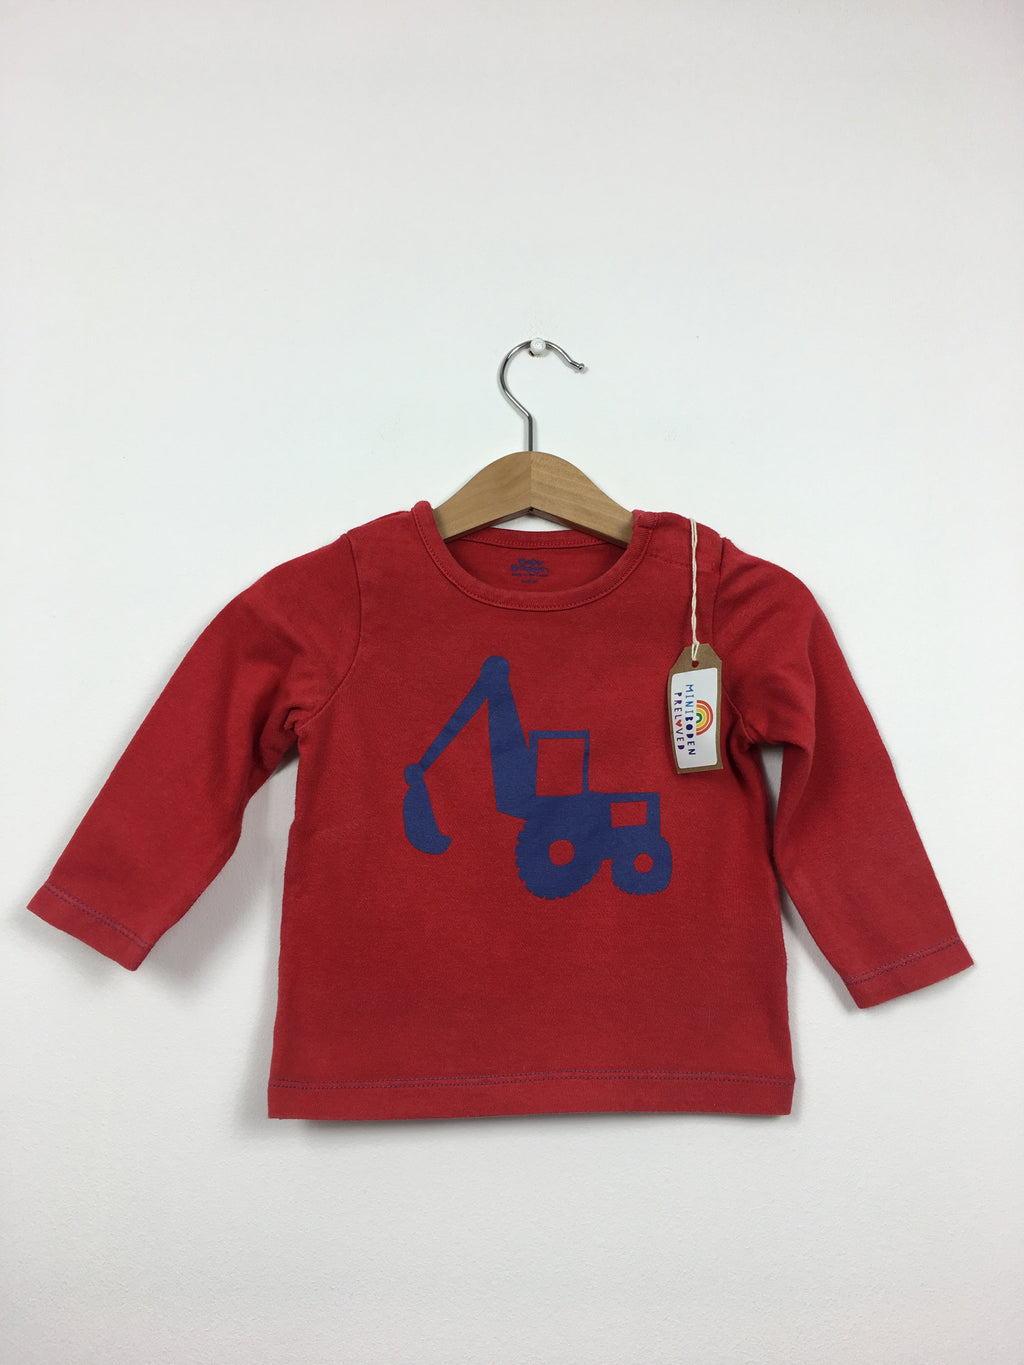 Red Digger Print Top (6-12 Months)